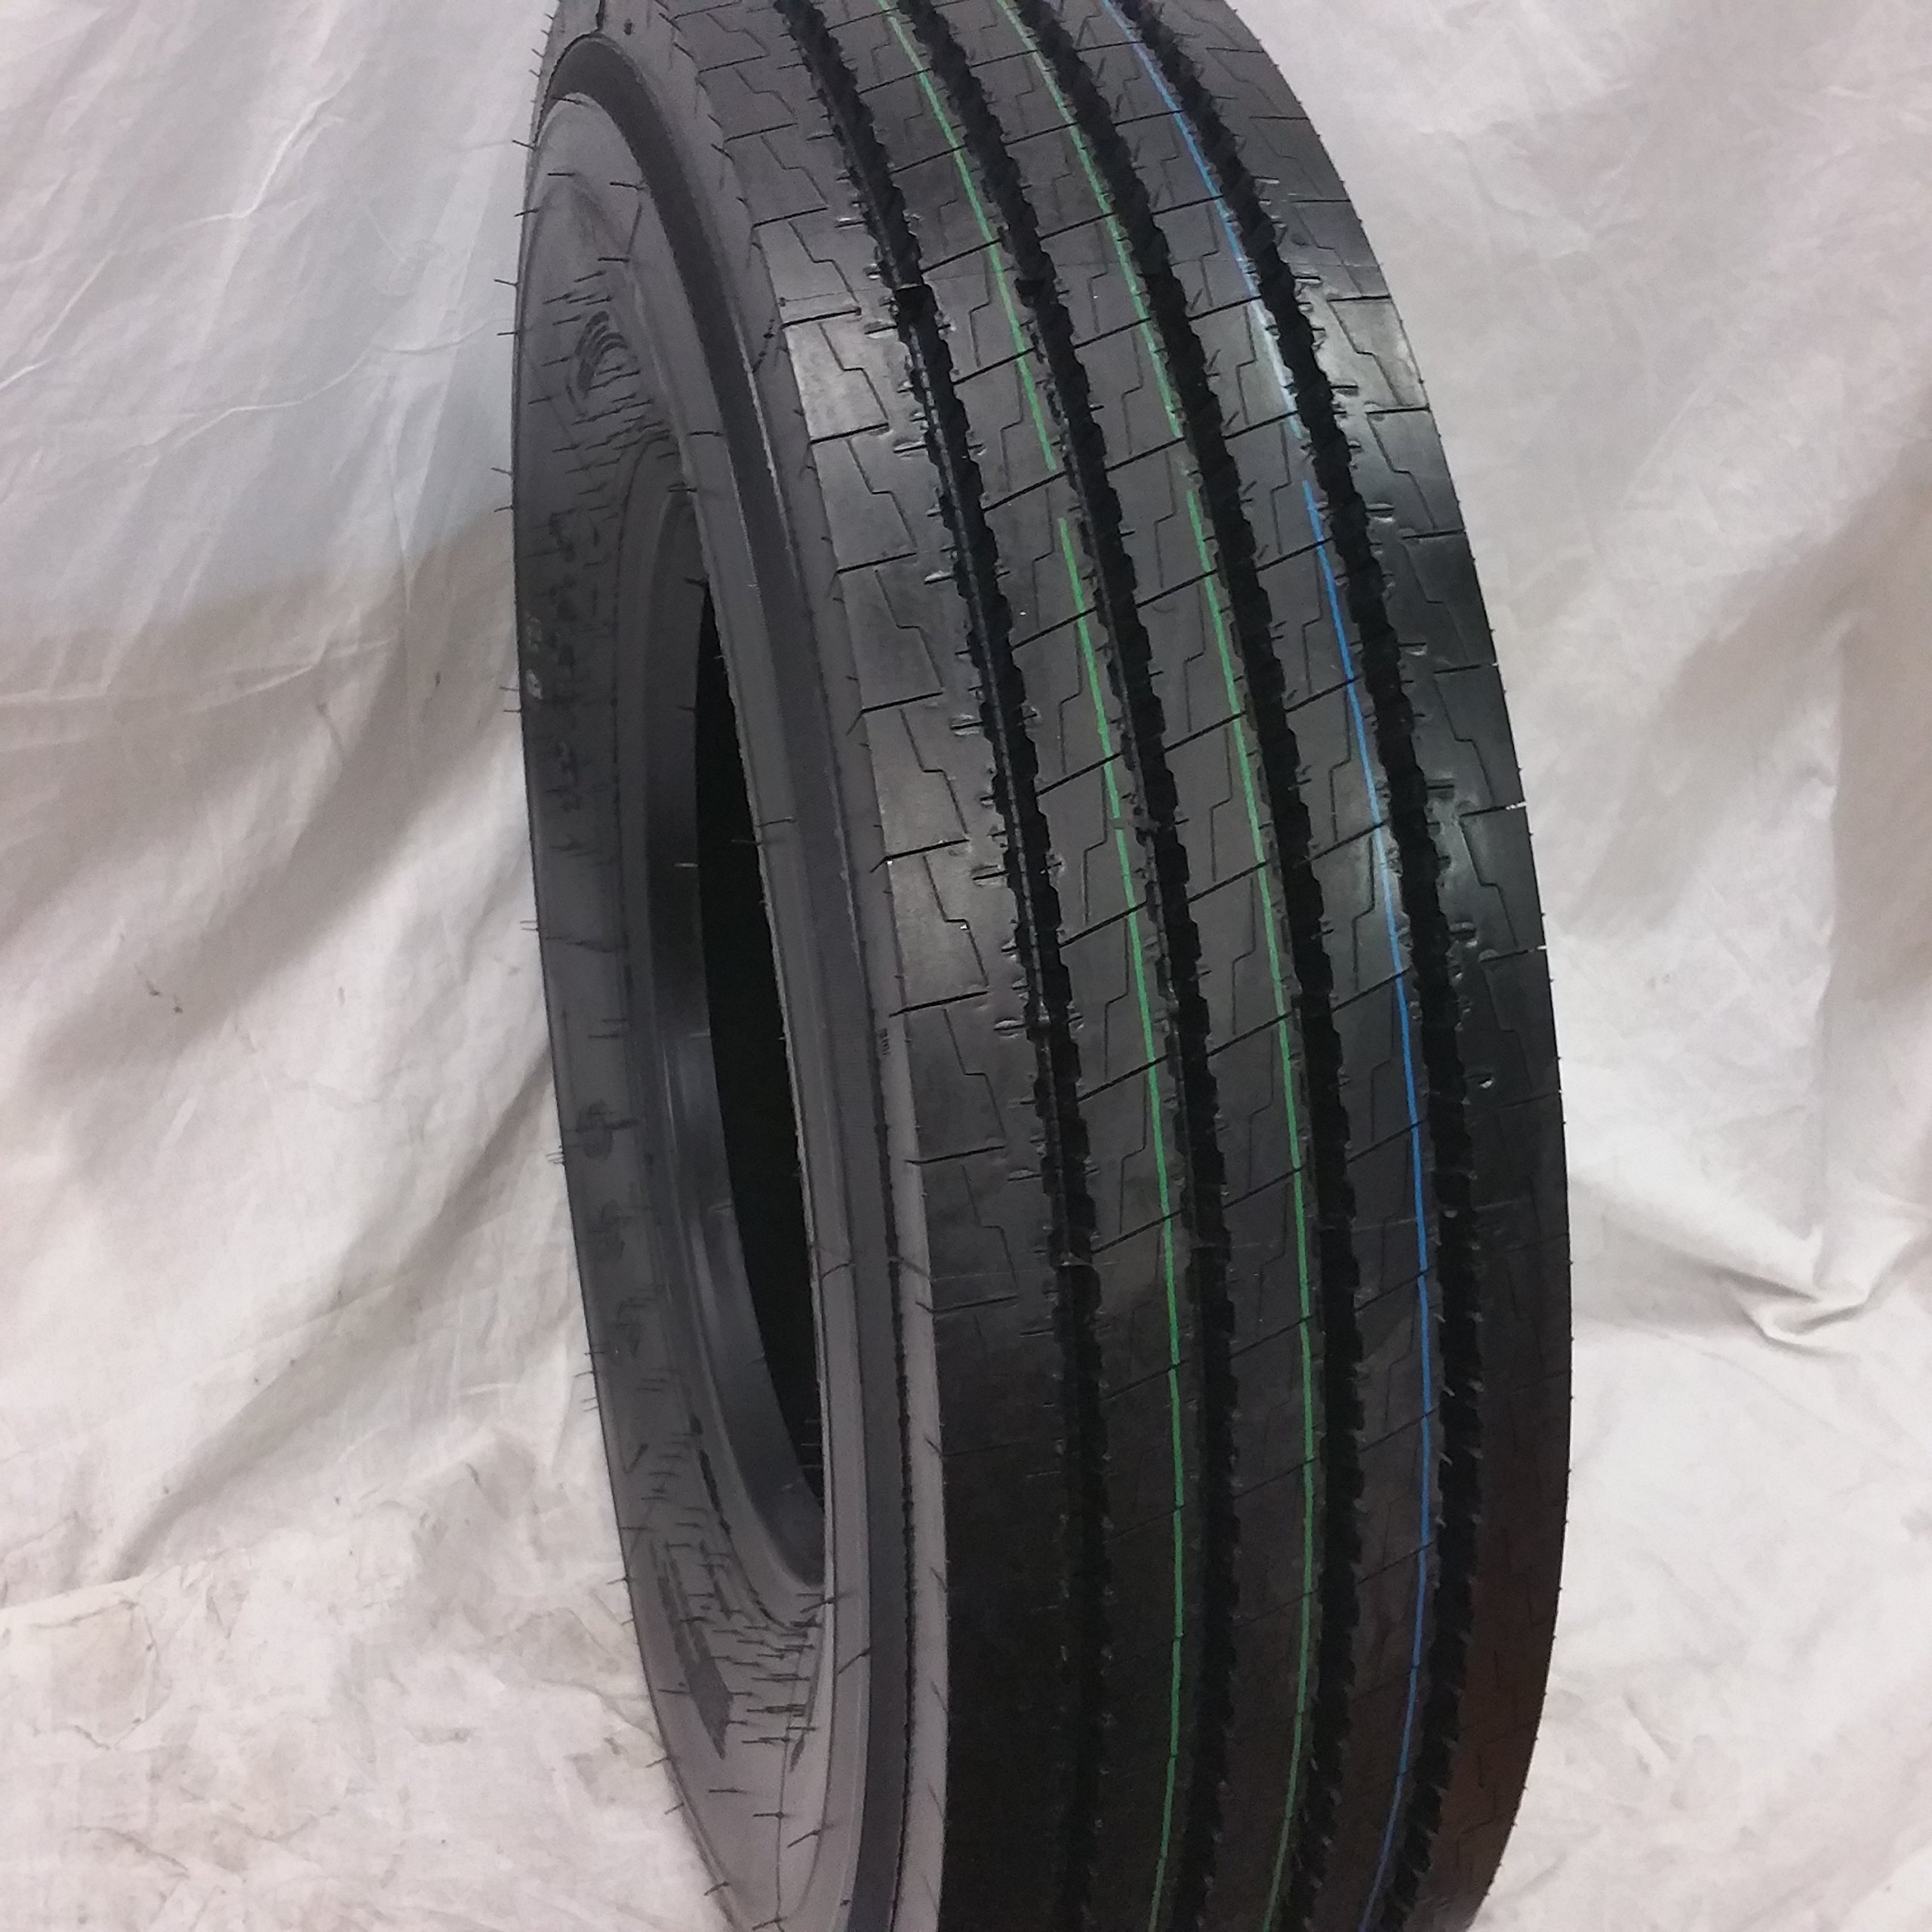 11R24.5 ROAD WARRIOR RADIAL (2- STEER TIRES) 16 PLY RATING by ROAD WARRIOR (Image #2)